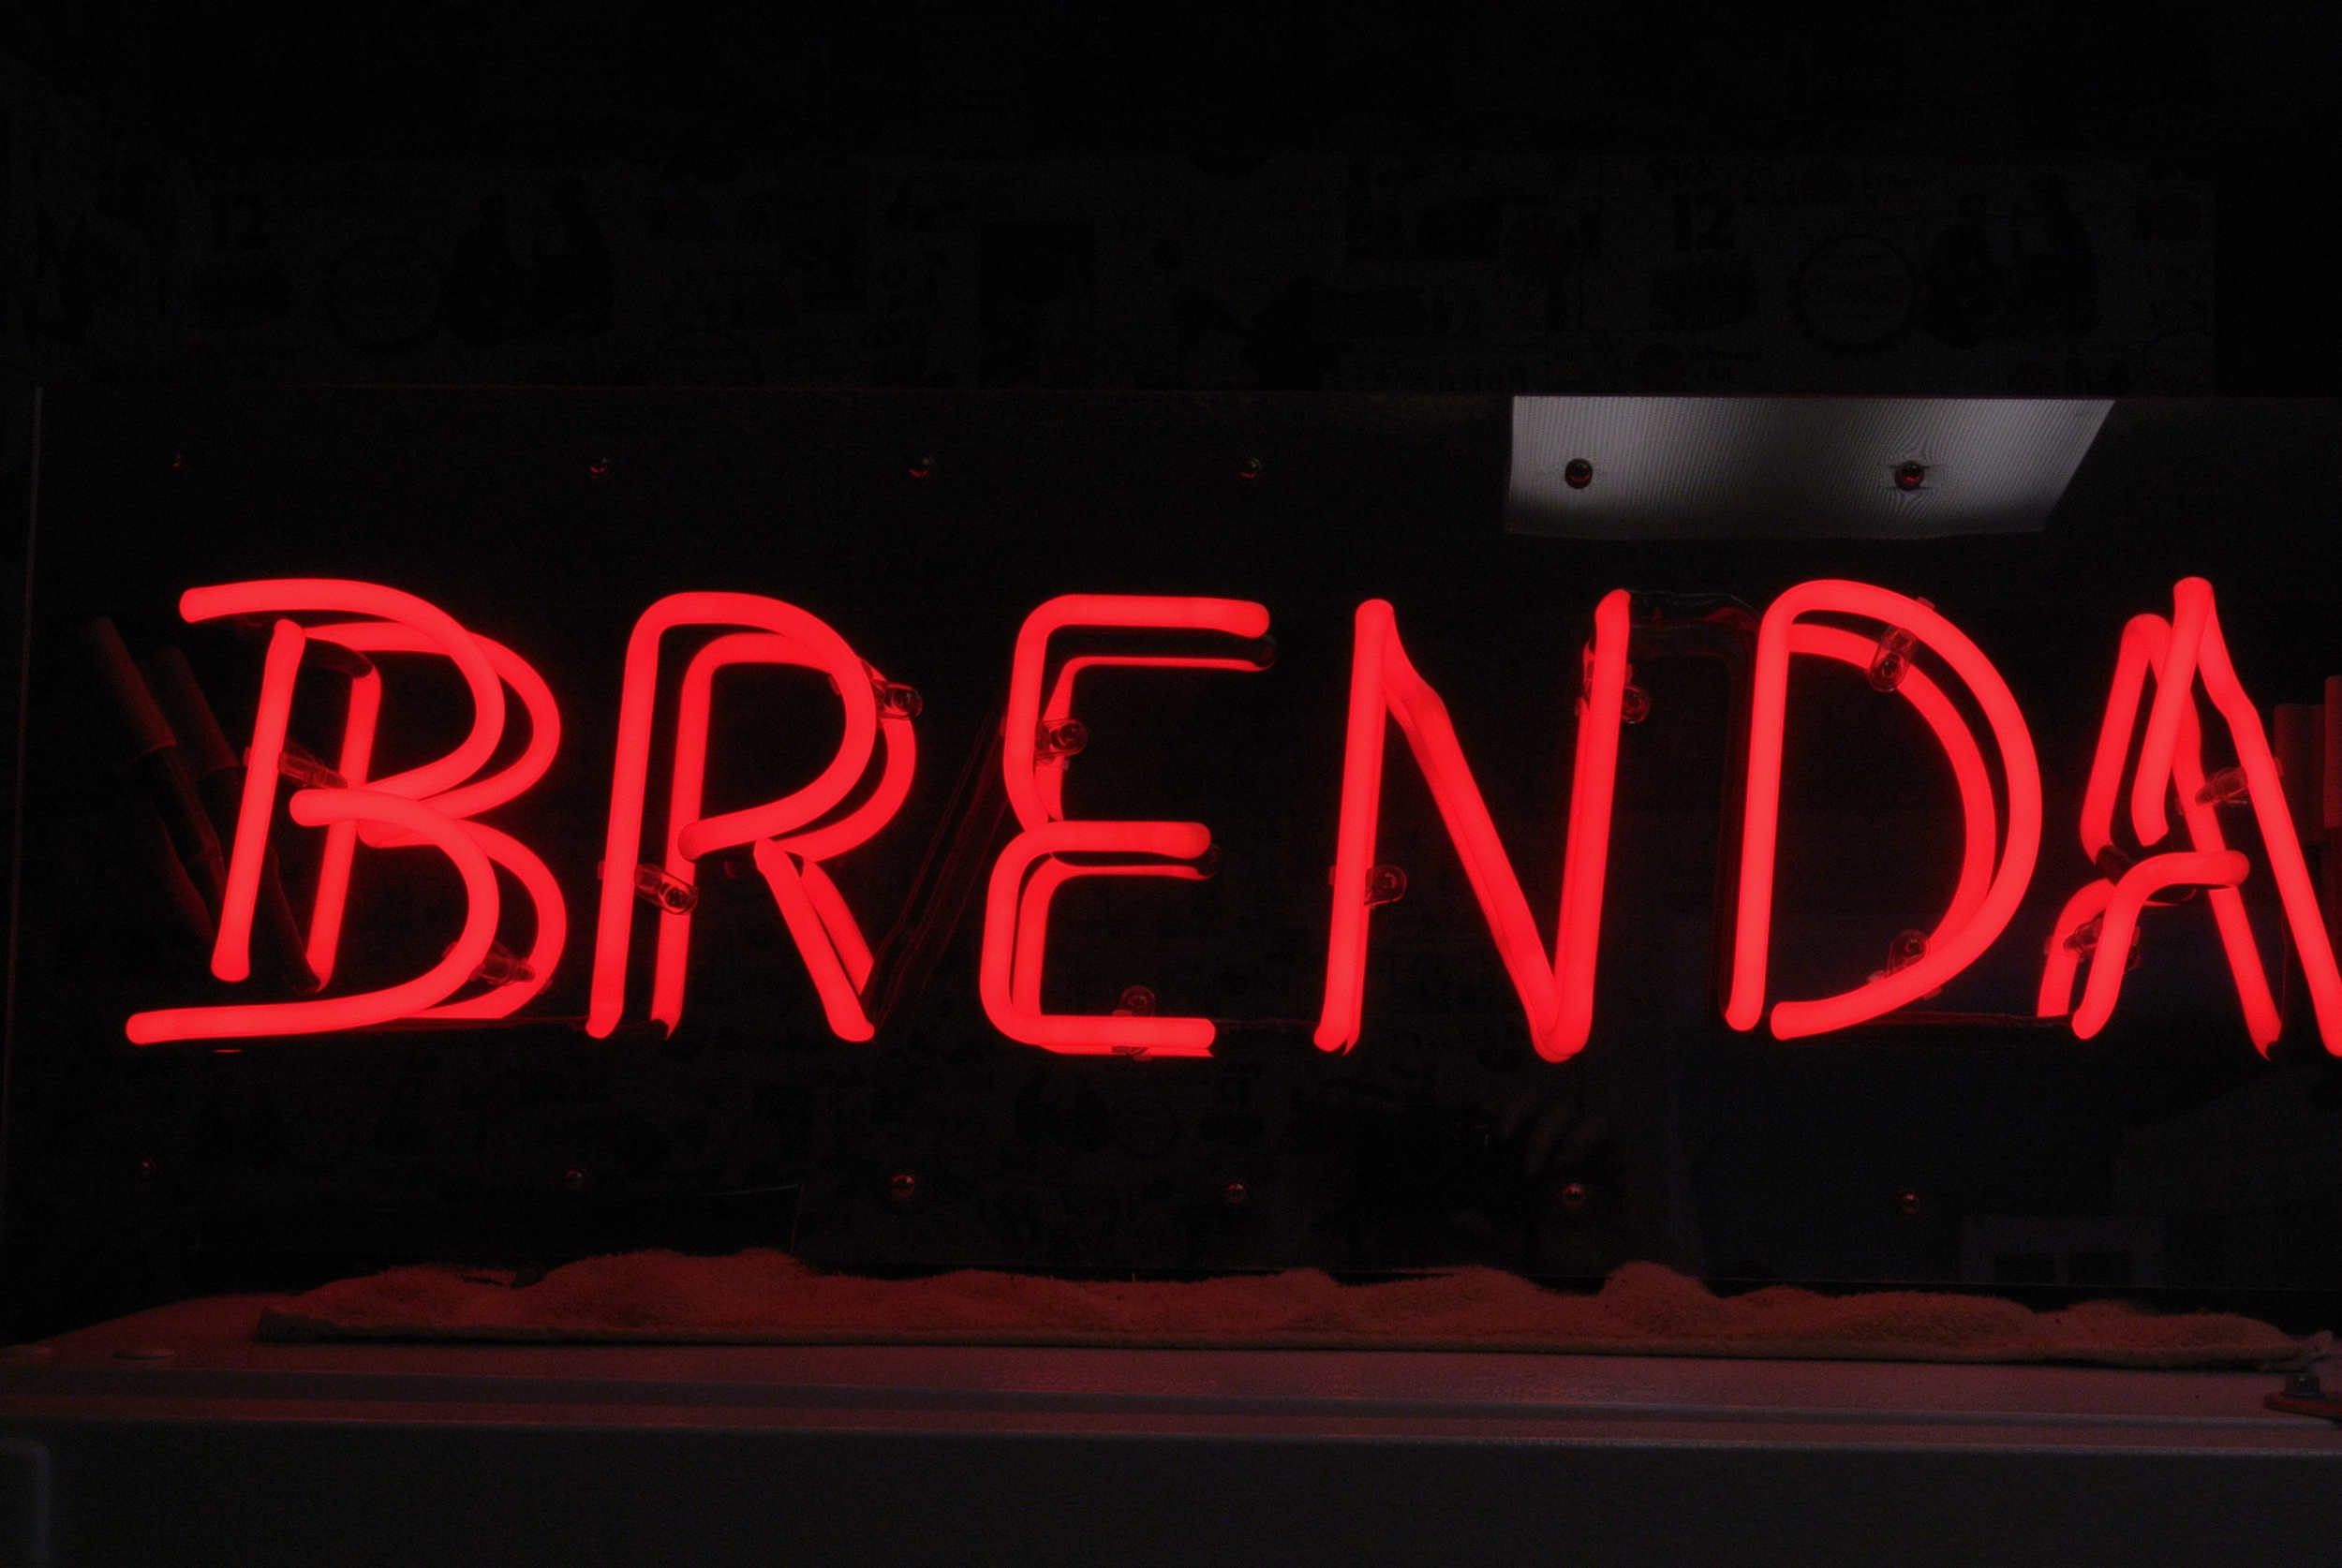 Your Name in Dazzling Custom Neon!